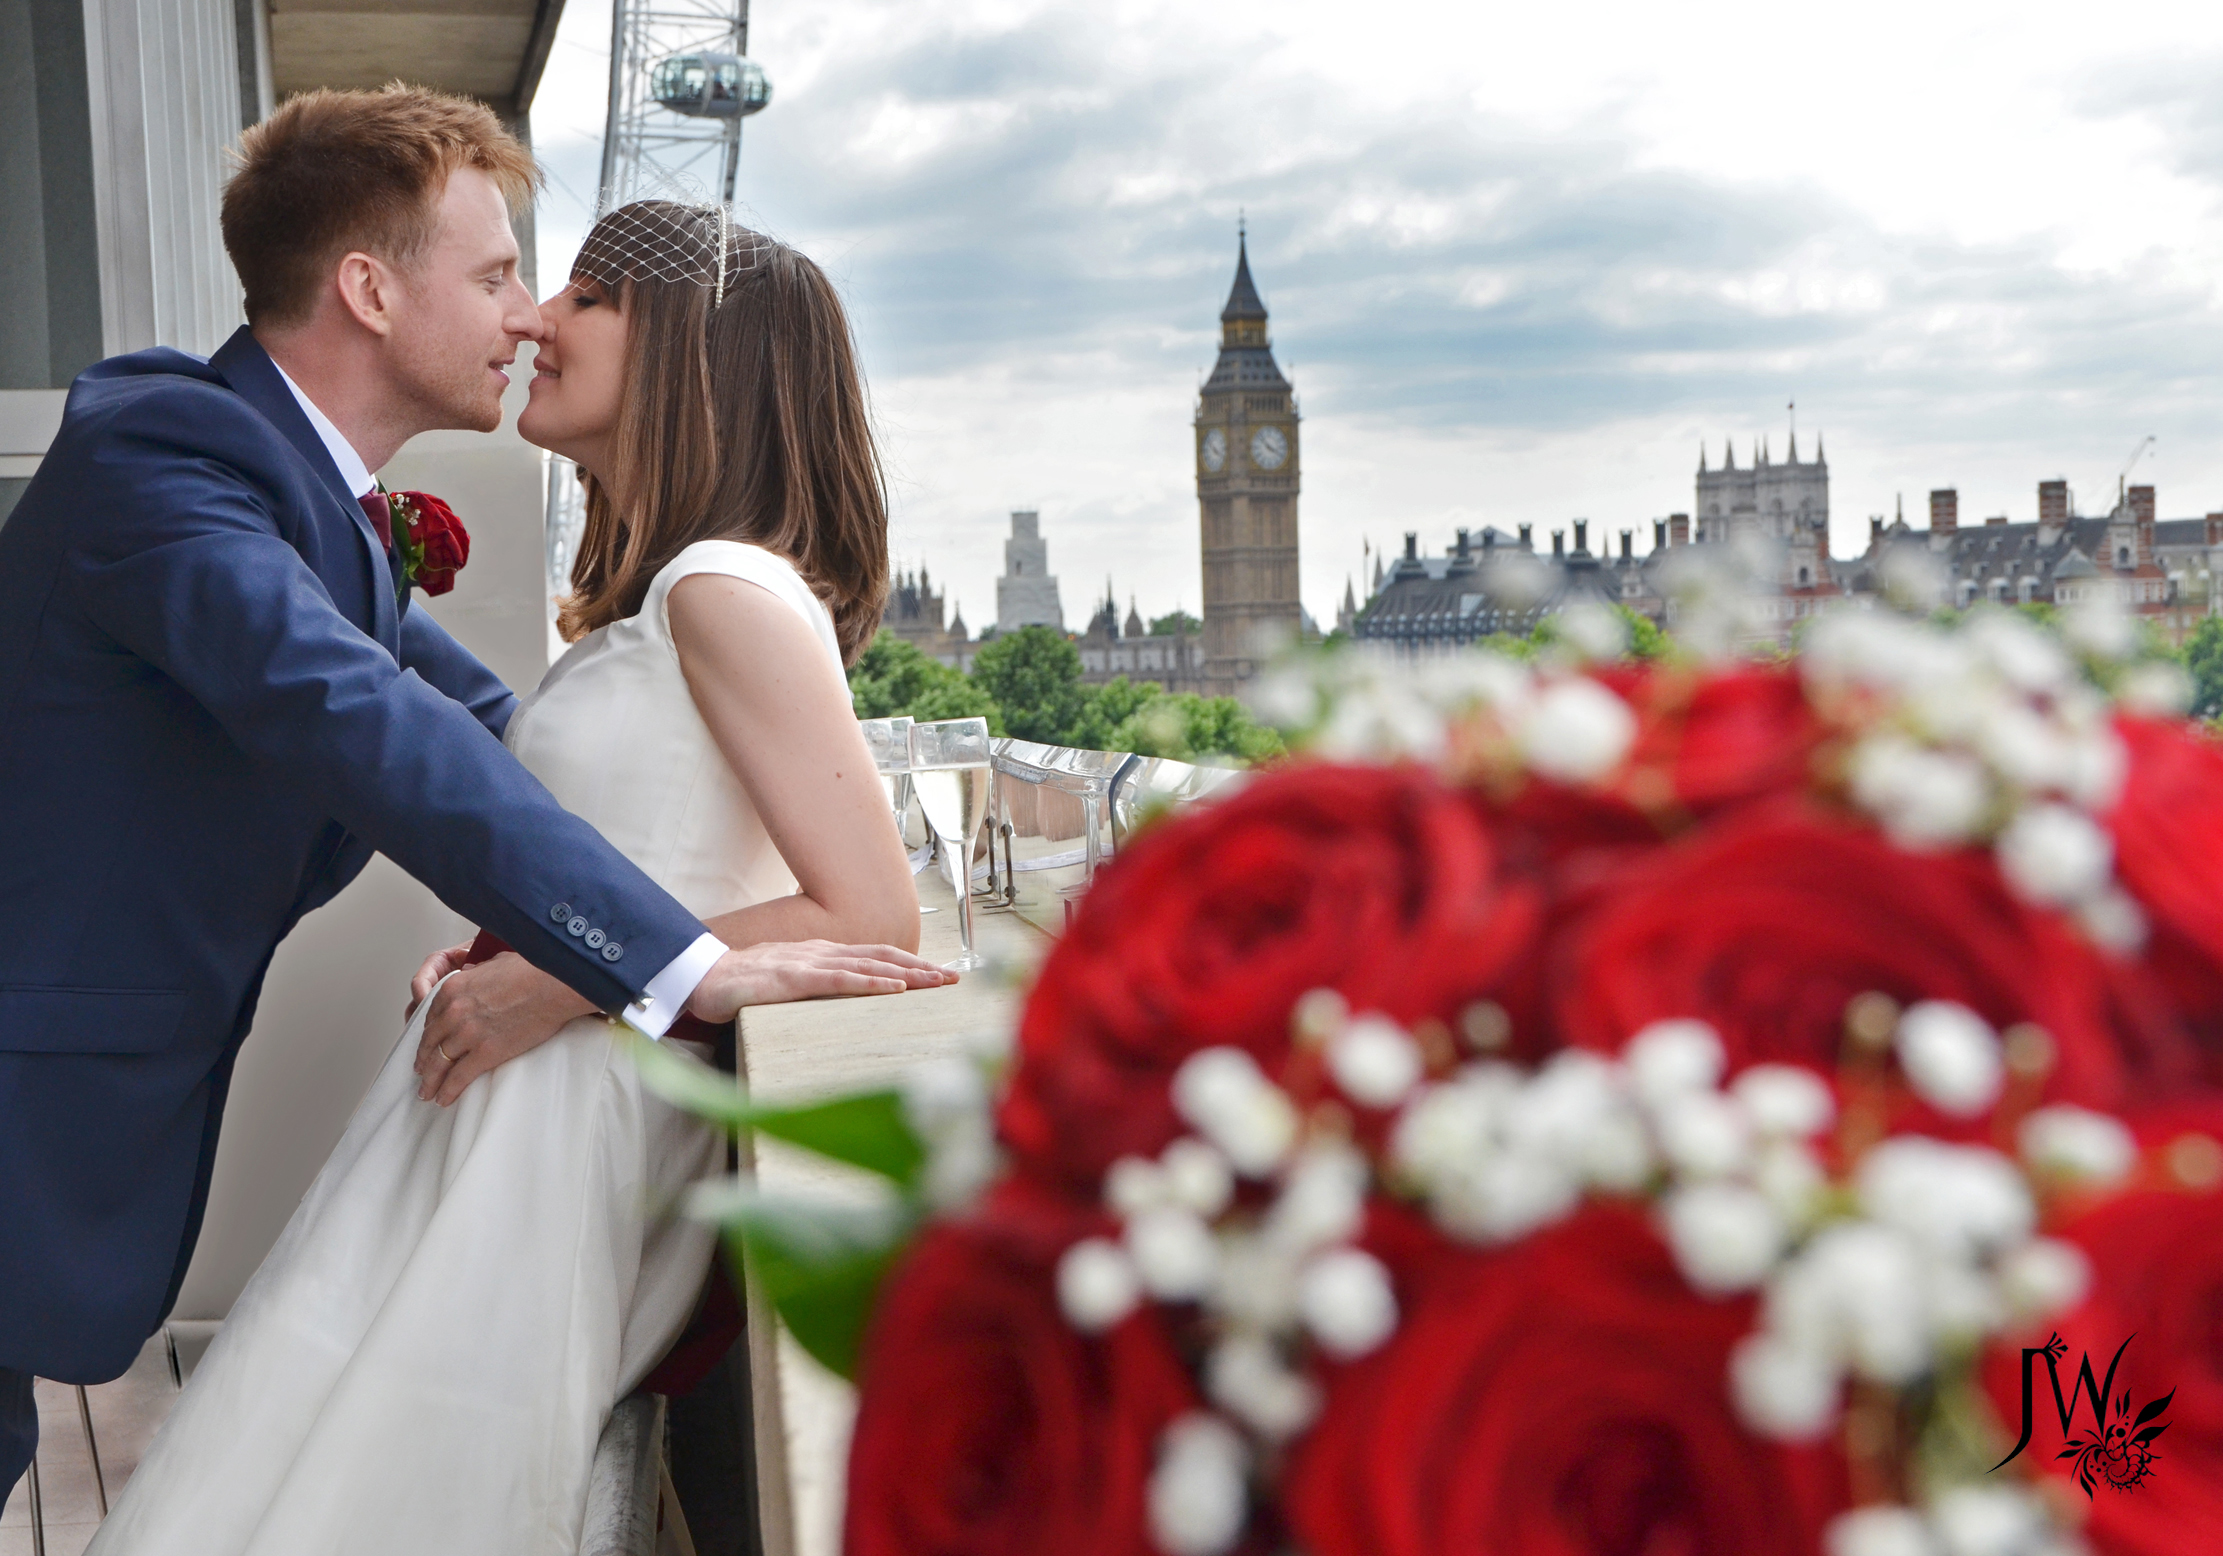 Wedding of Becky and Olly - Married Couple on Royal Festival Hall Terrace  CREDIT Jennifer West 2013